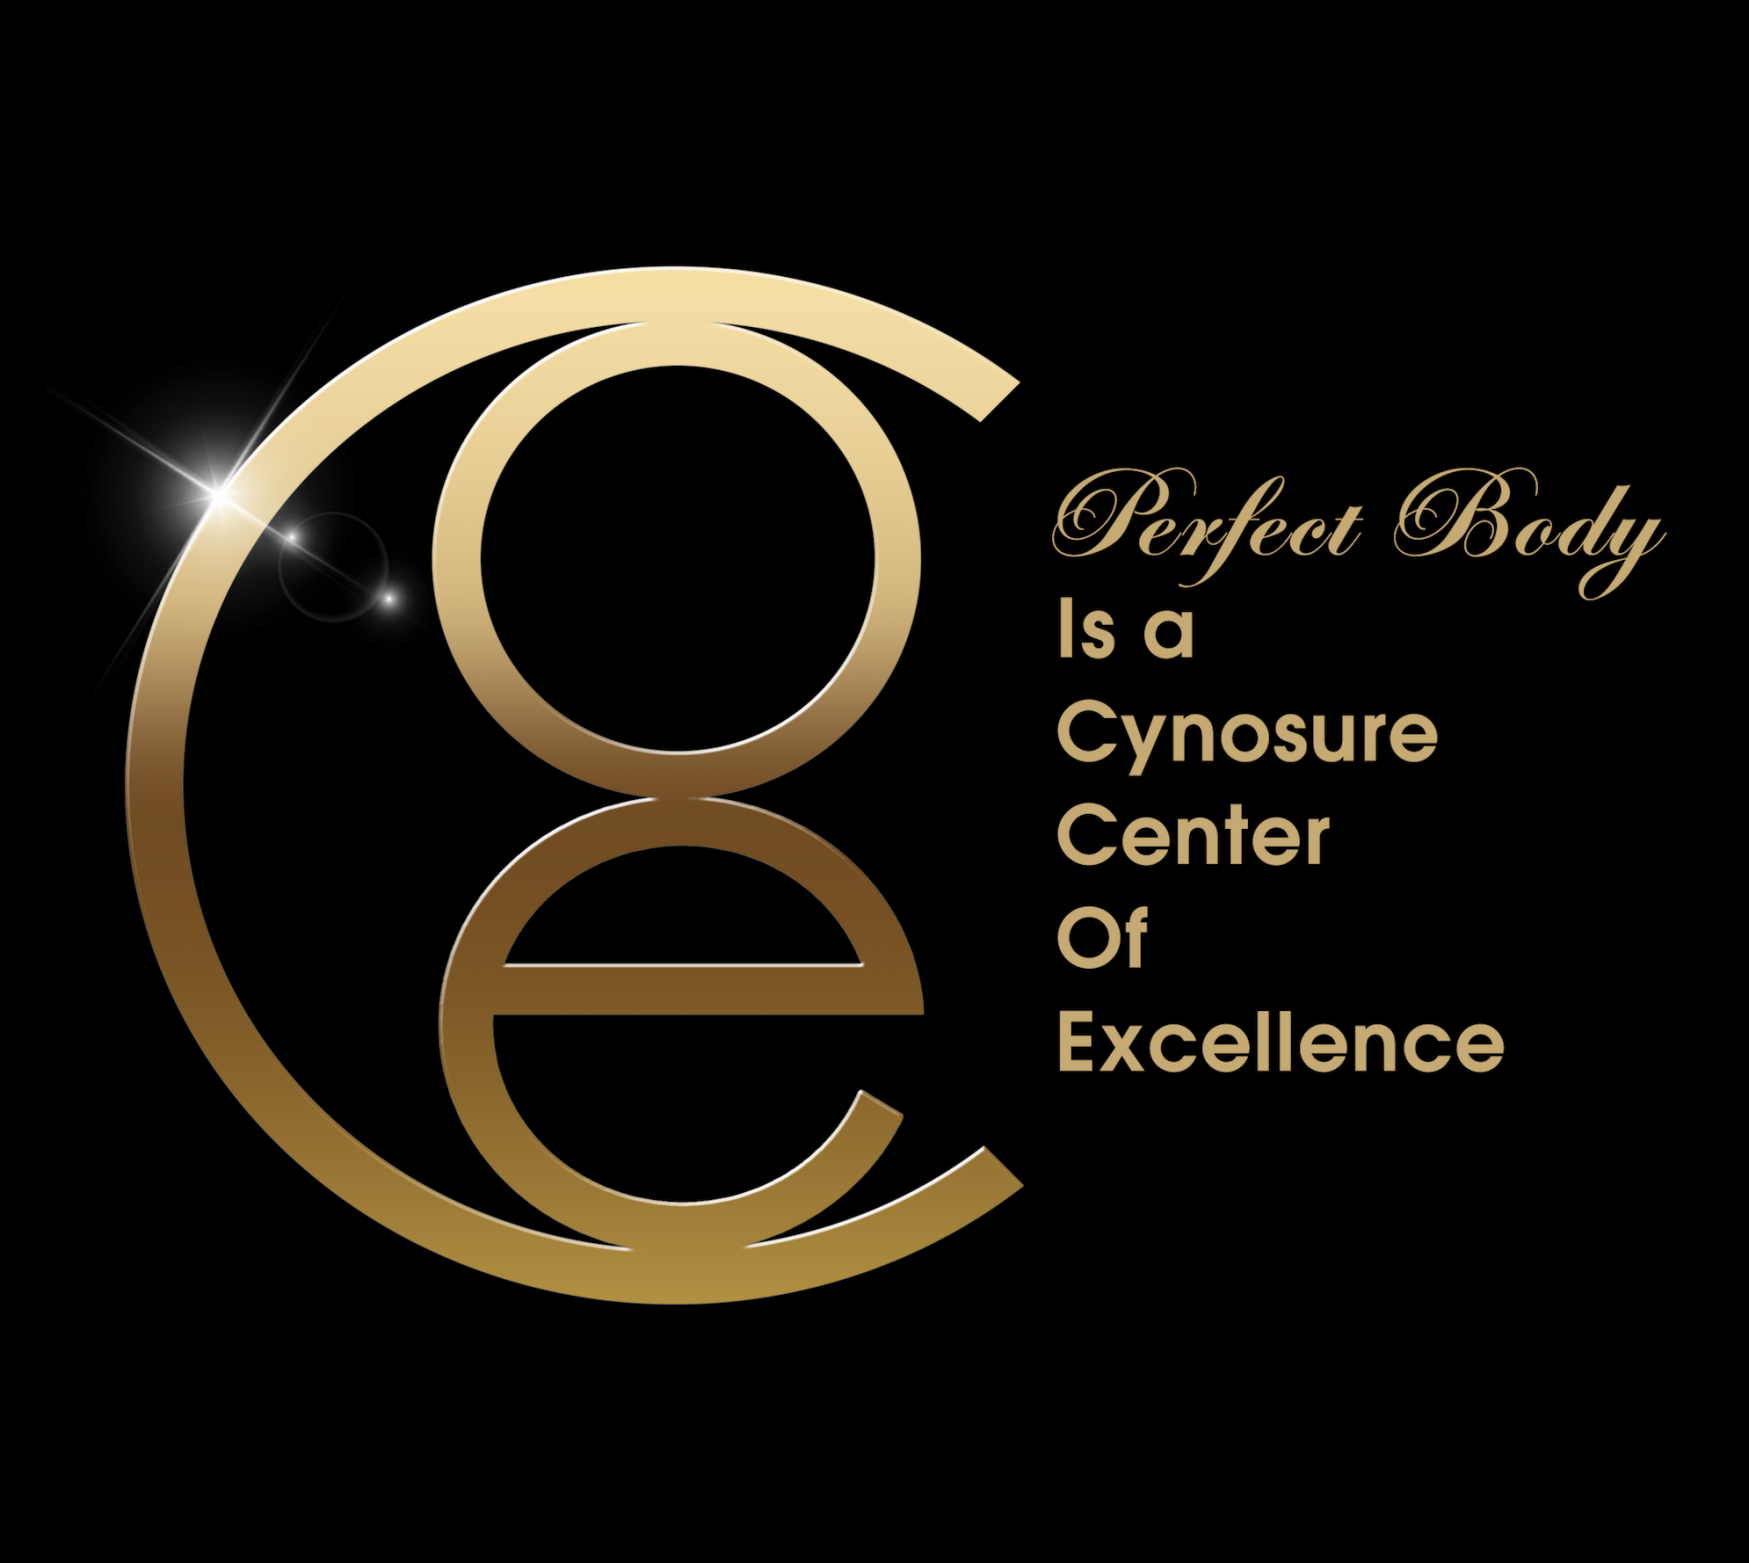 Perfect Body Laser - Cynosure Center of Excellence